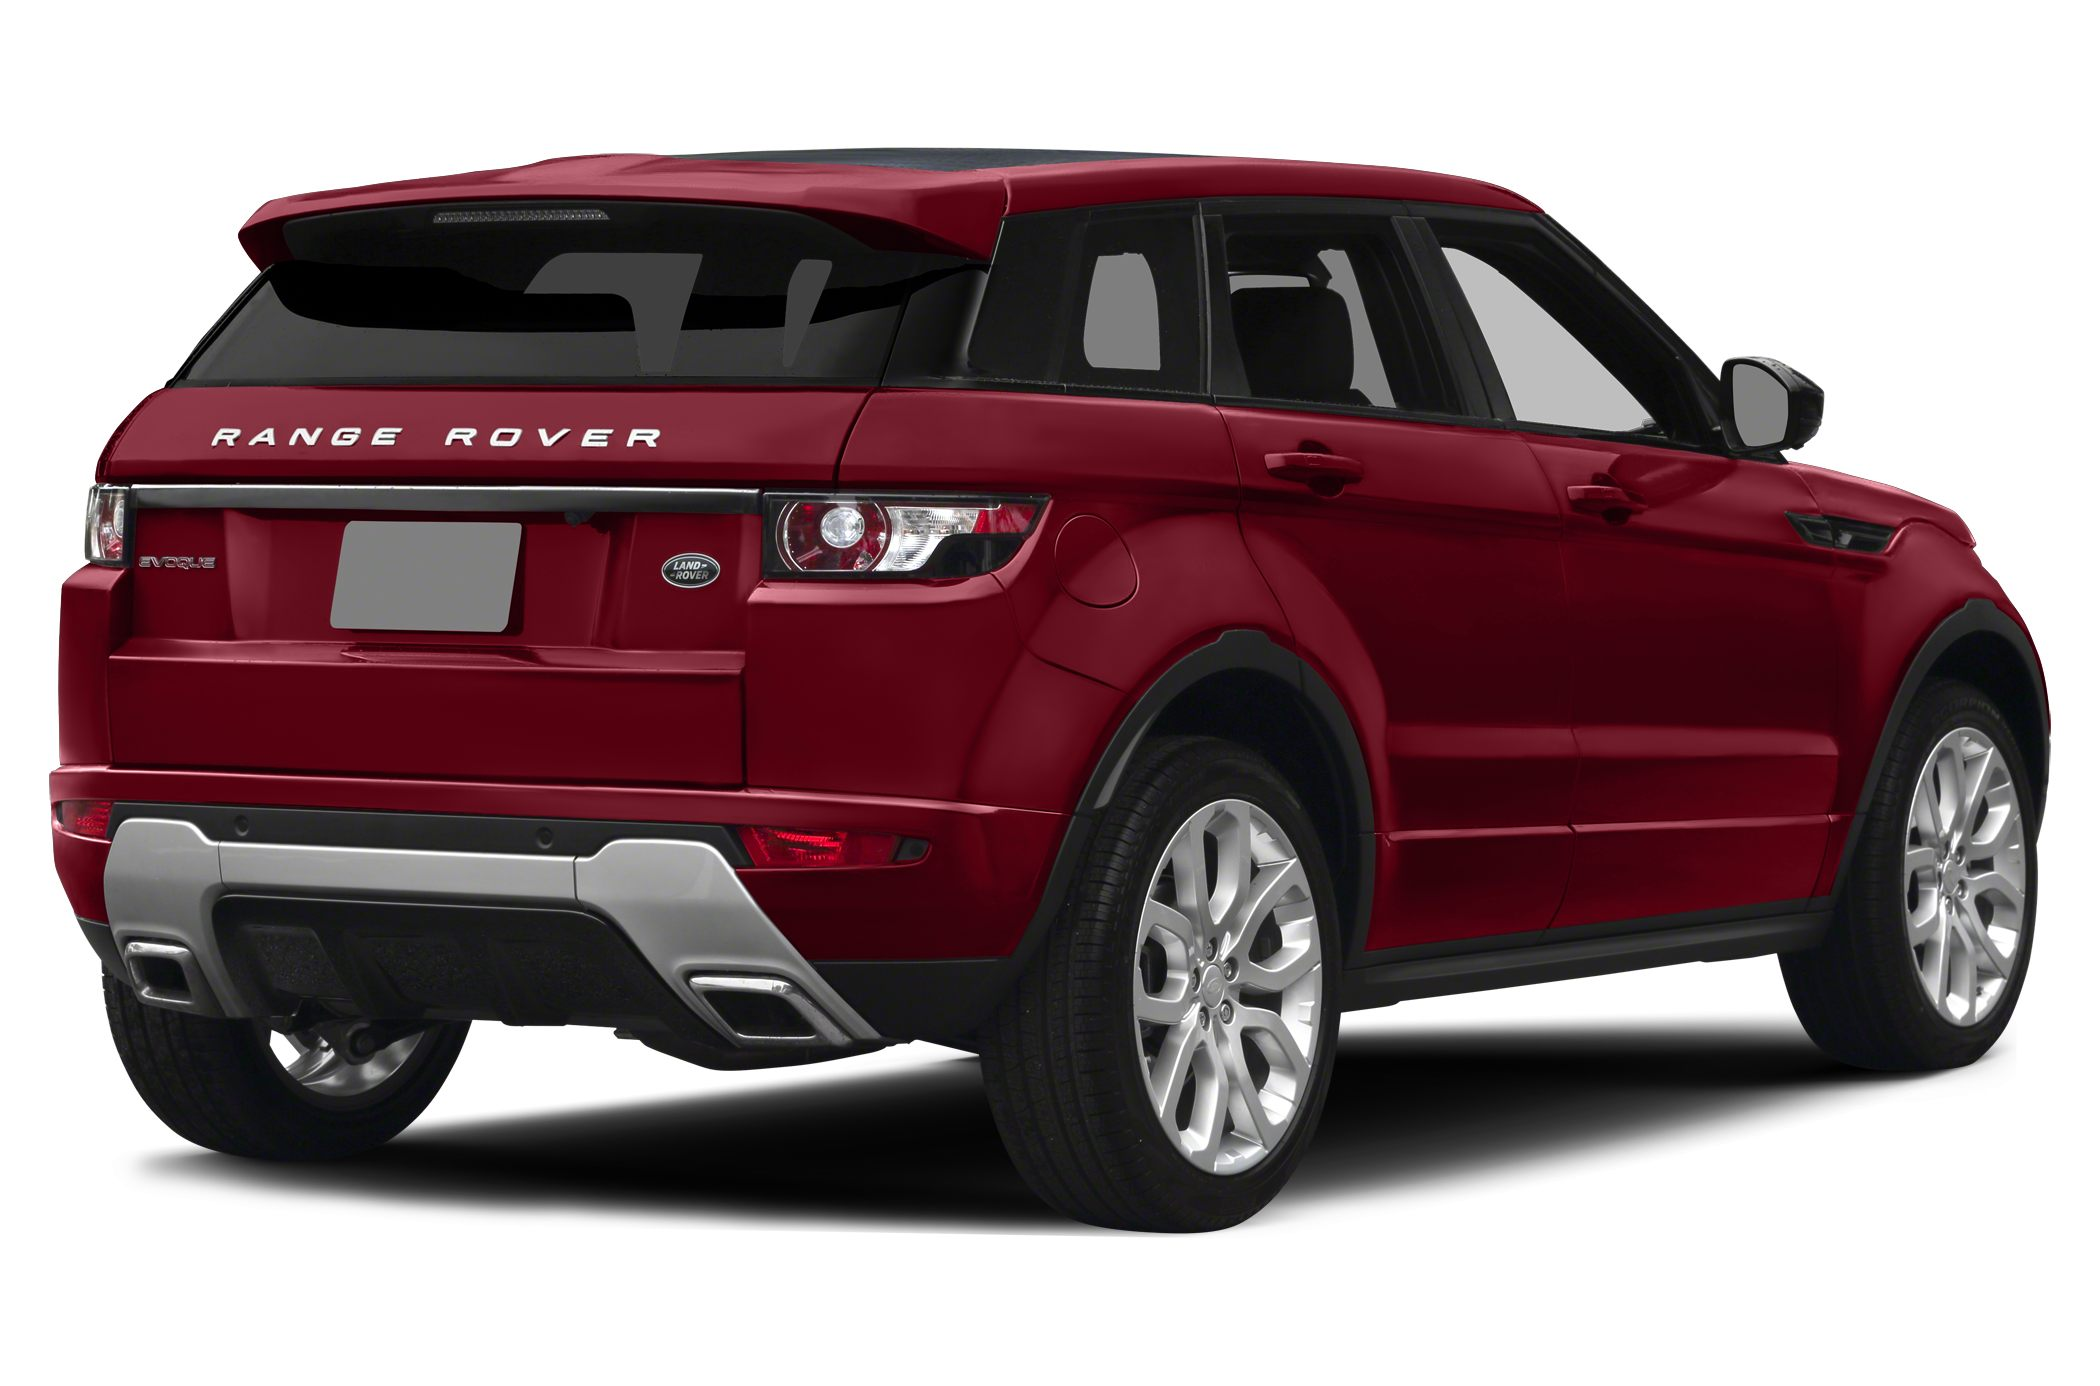 2015 Gasoline Rover Range Rover Suv In Florida For Sale ▷ 24 Used